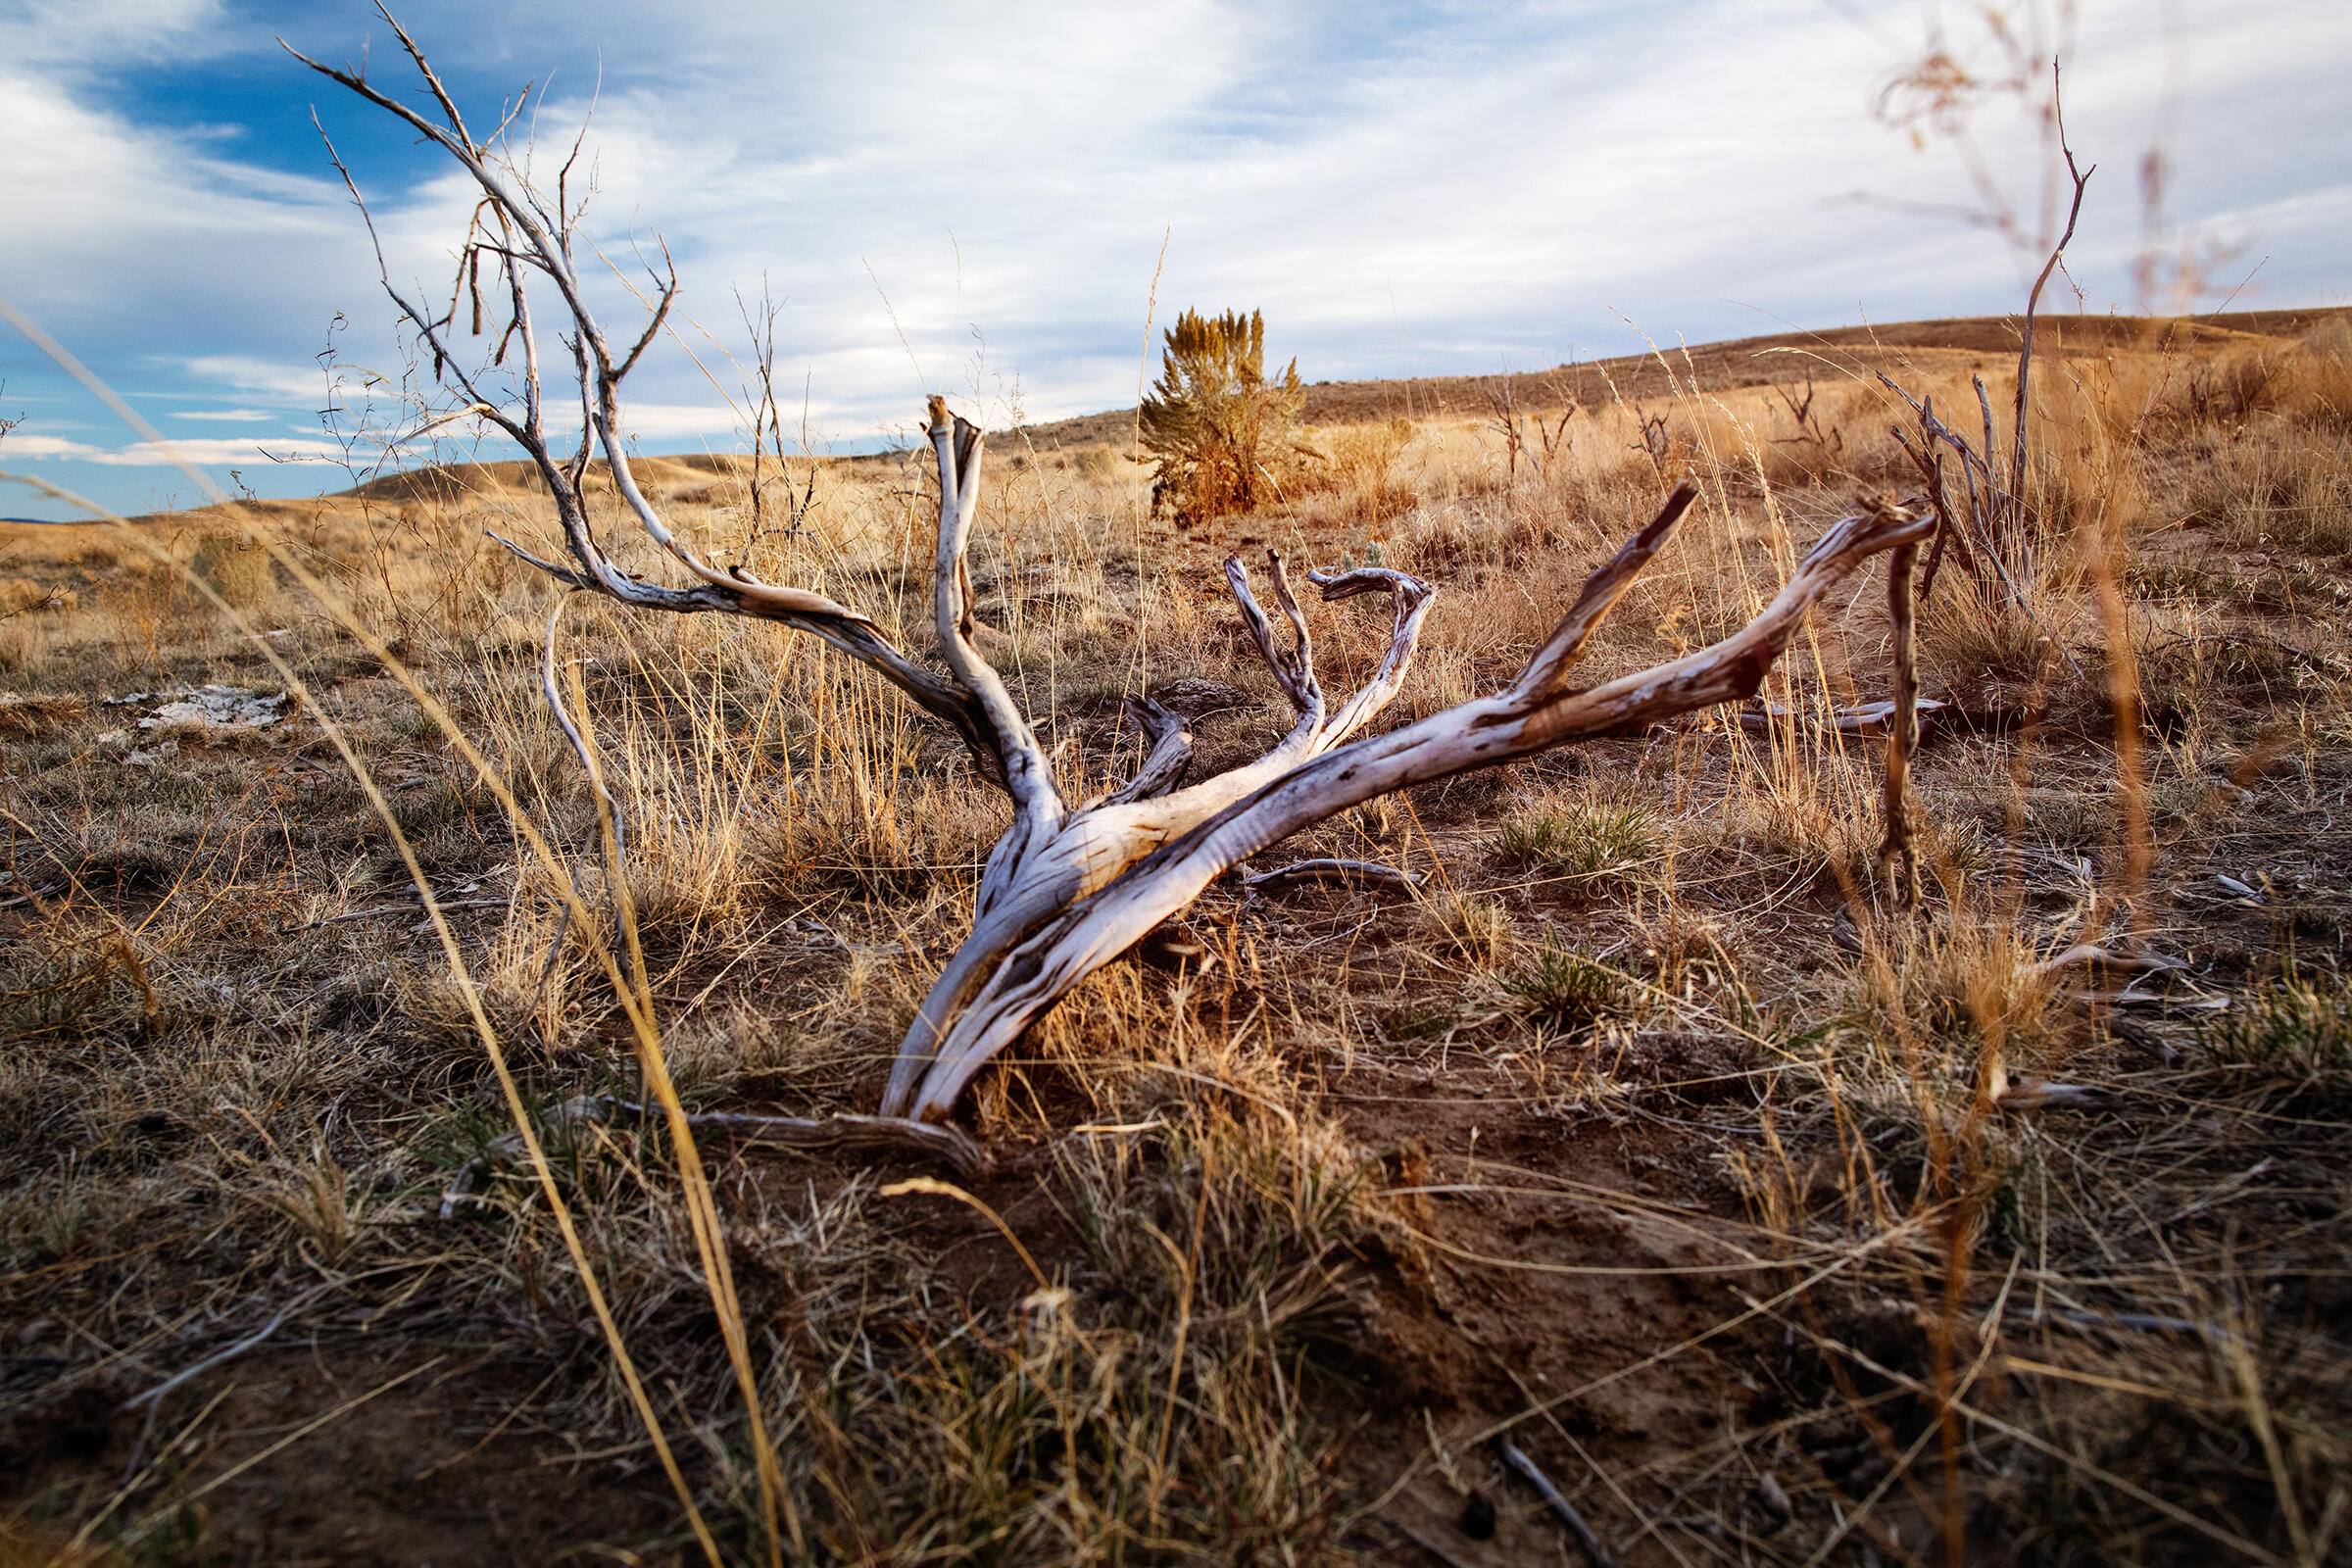 Behind a dead plant's skeleton, a healthy sagebrush shrub grows at the site of the 2012 Danner Loop fire in Oregon—the first area replanted through the Sagebrush in Prisons Project. Mike Fernandez/Audubon